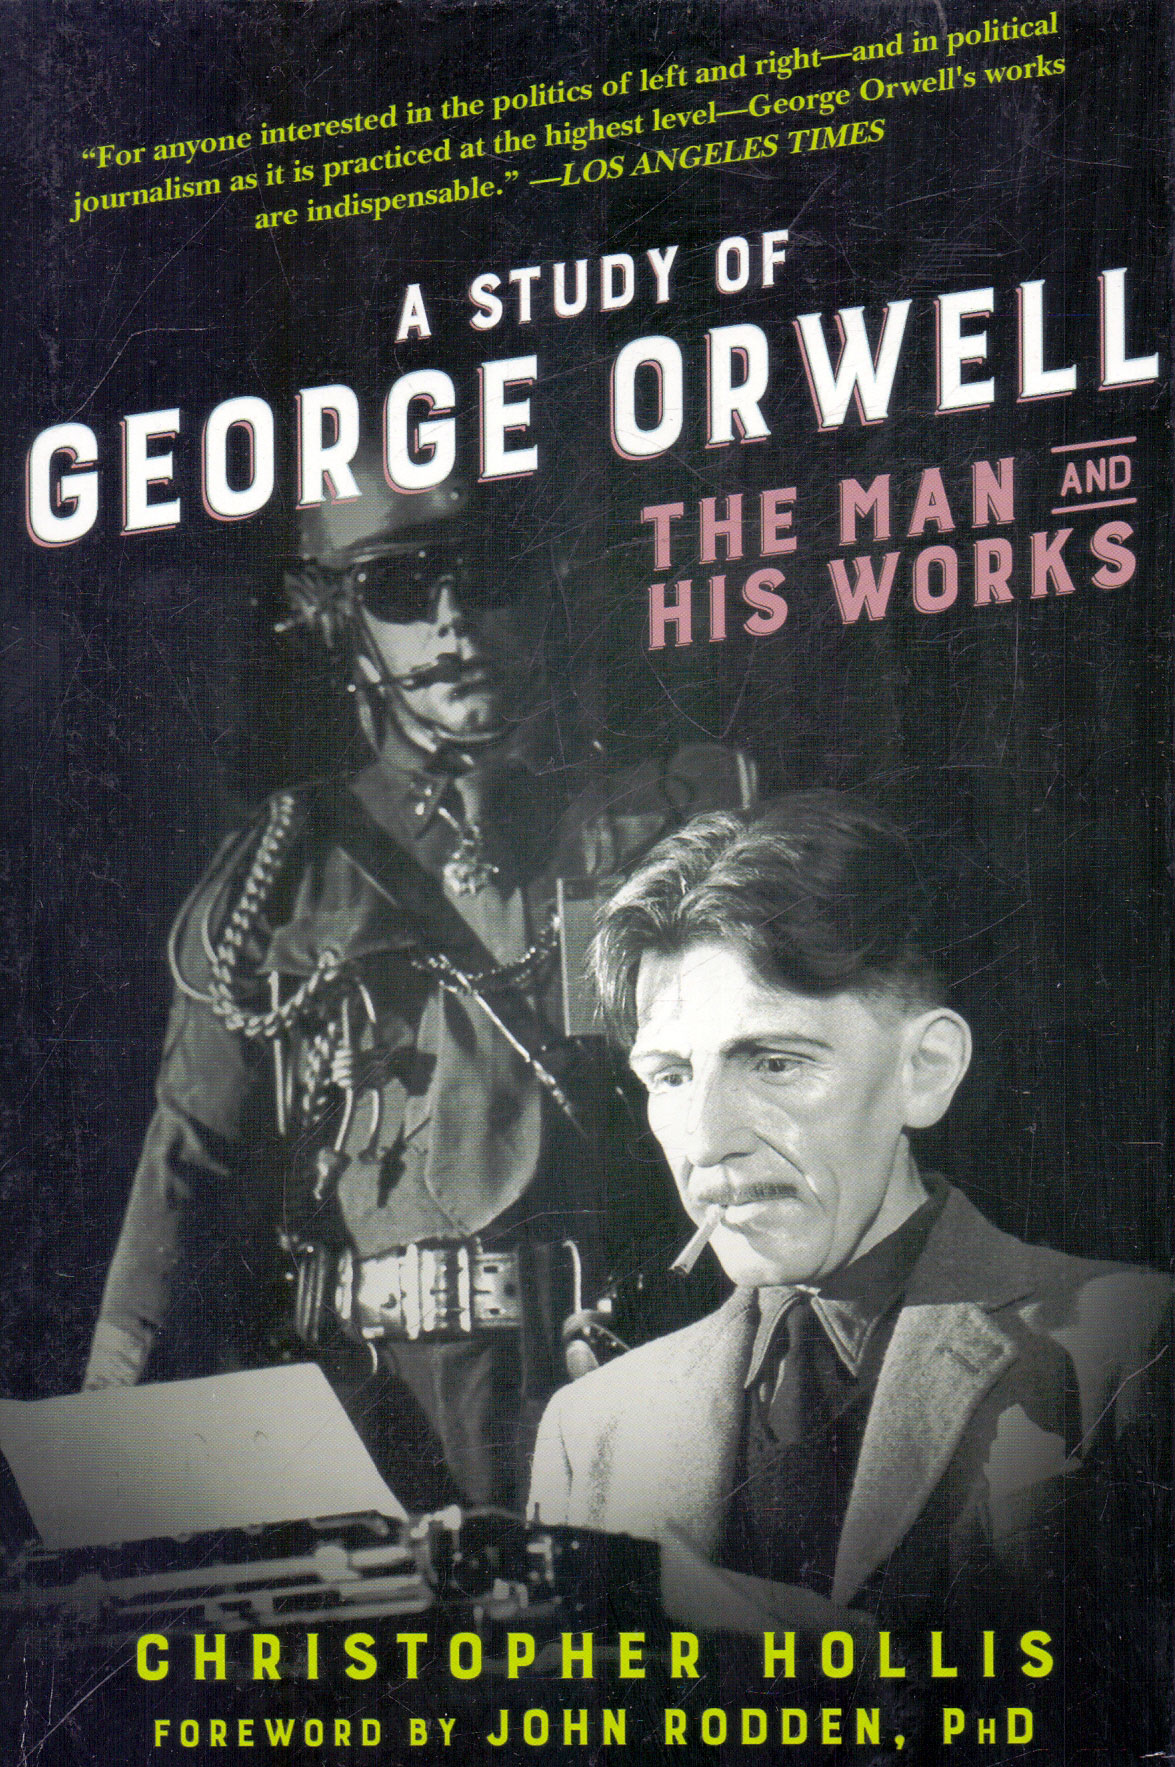 A Study of George Orwell the Man and His Works